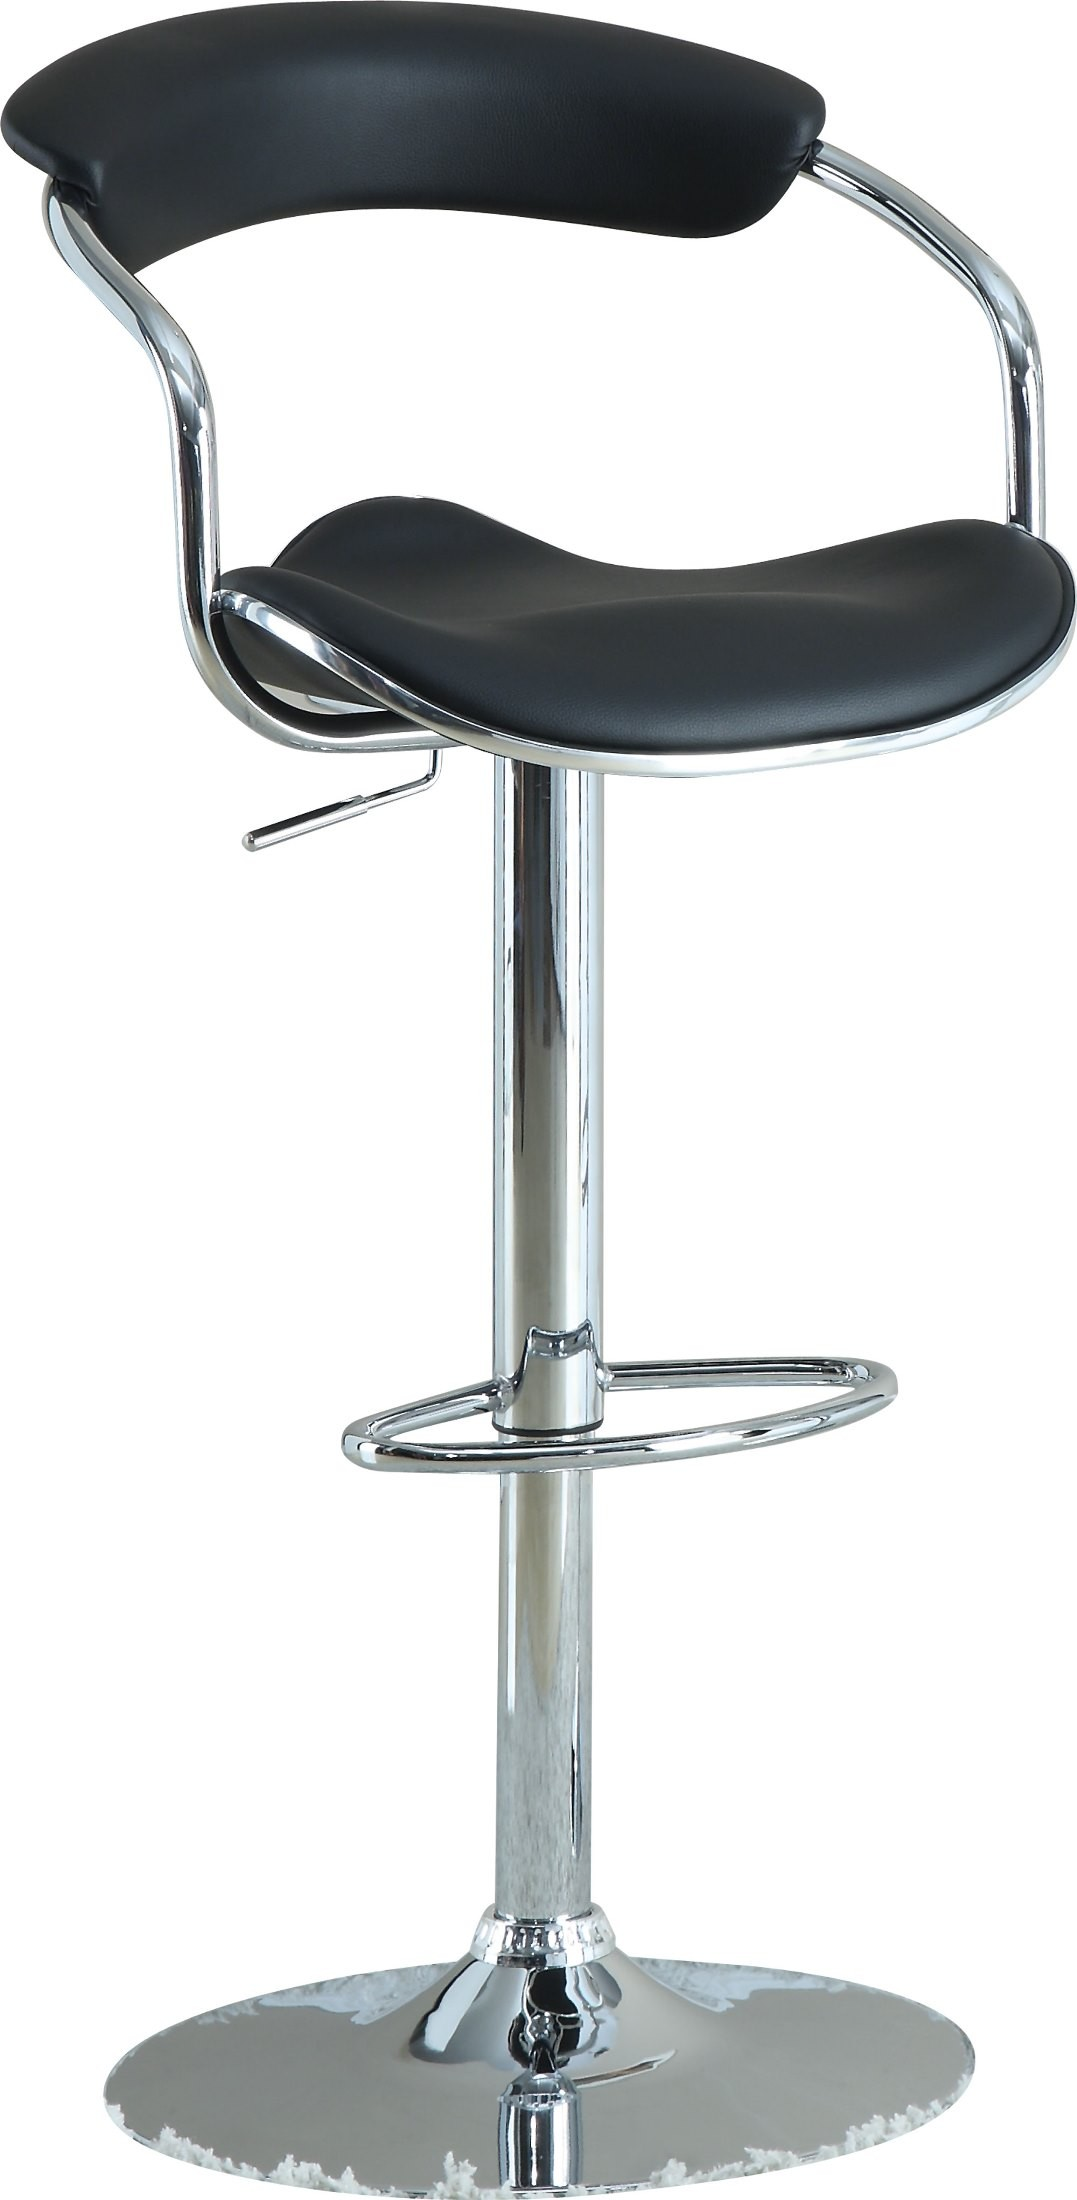 Modern Black Adjustable Bar Stool Set of 2 from Coaster  : 120386 mask from colemanfurniture.com size 1077 x 2200 jpeg 166kB